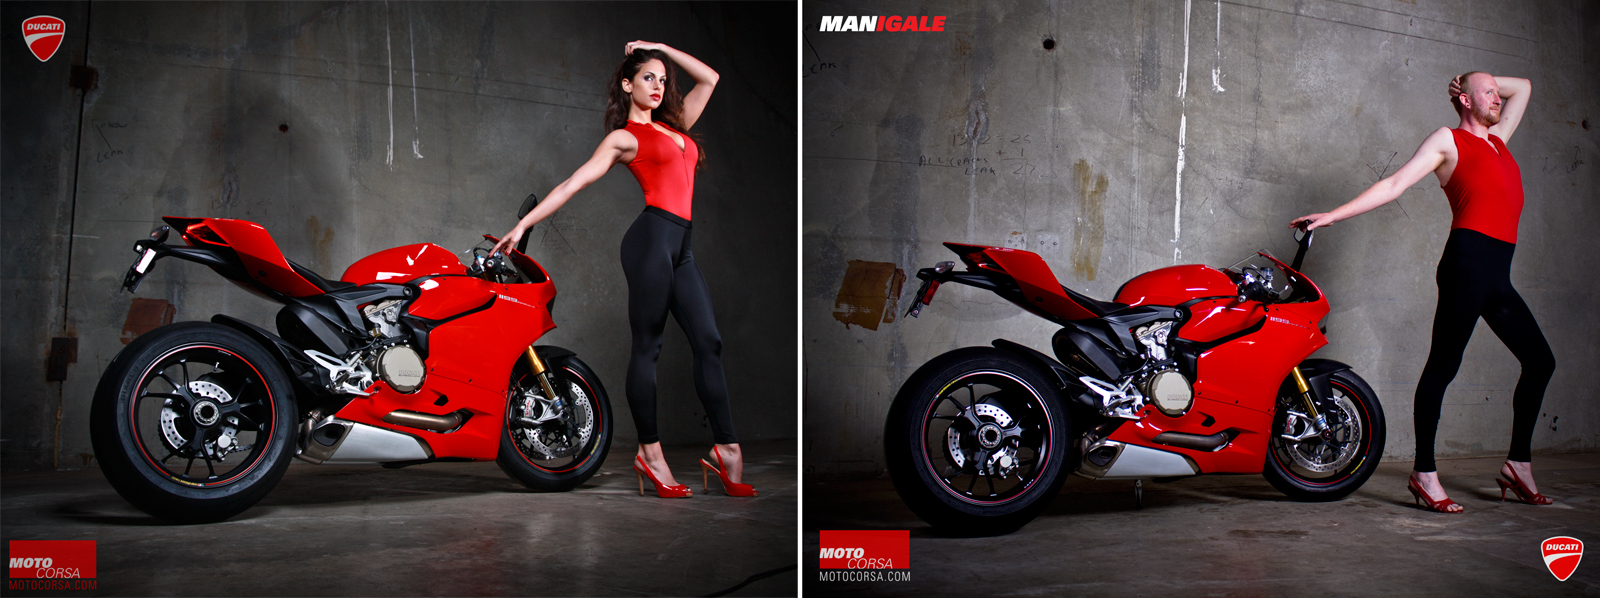 manigale-ducati-1199-wallpaper-08-comp